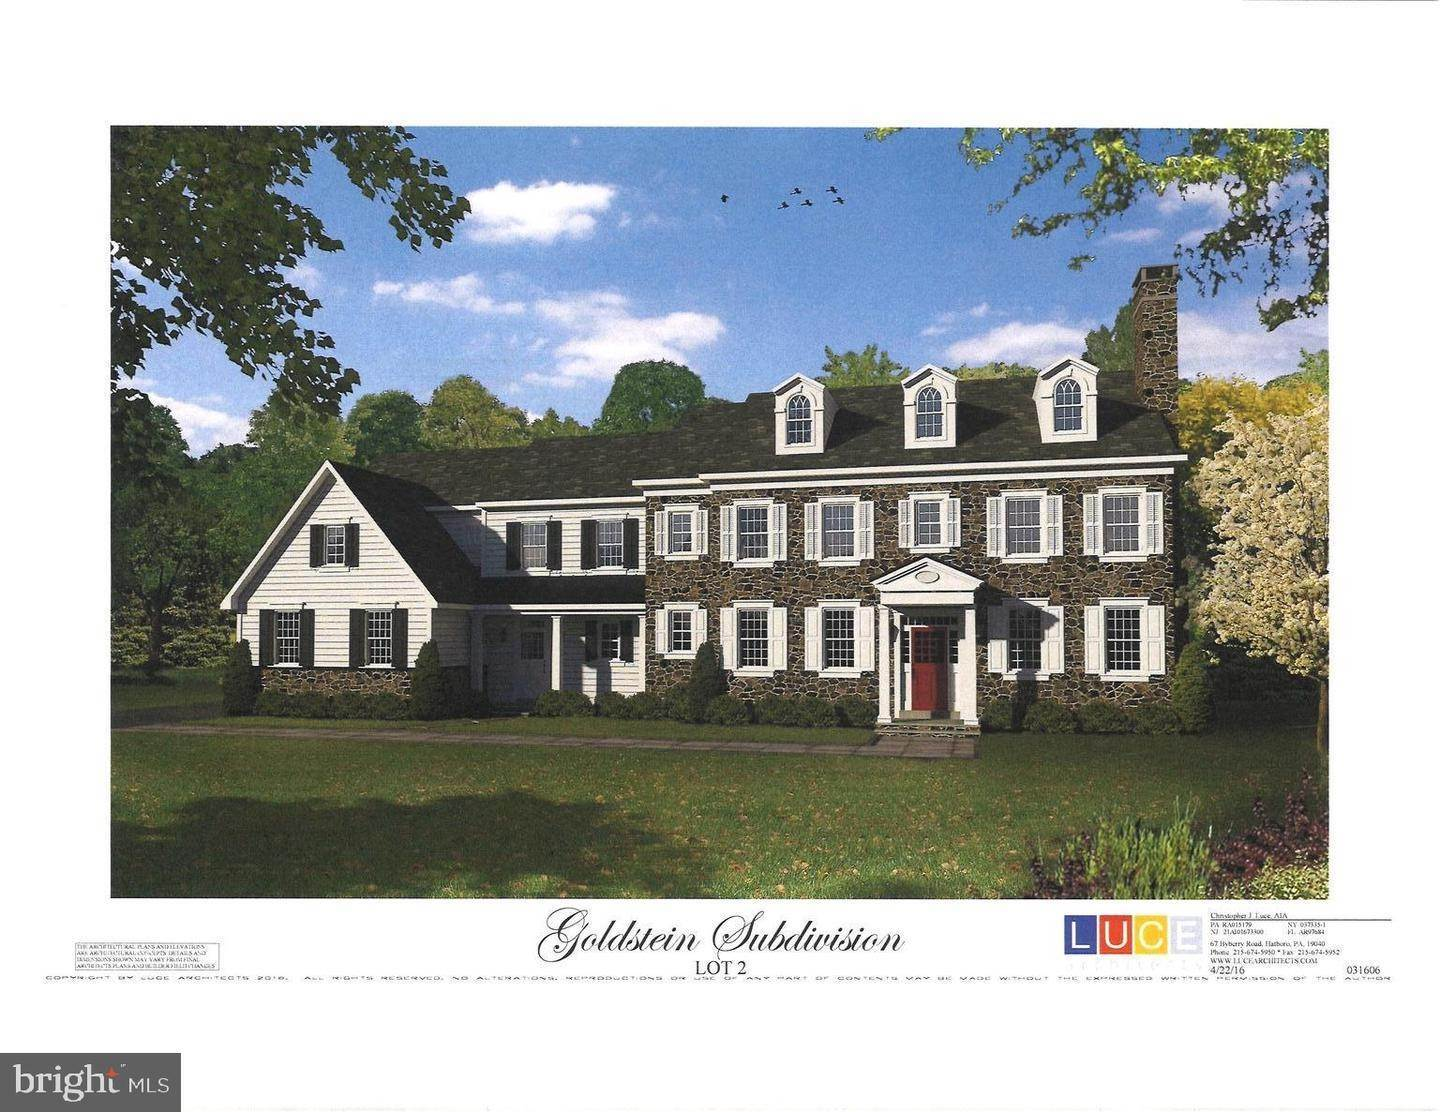 Detached House for Sale at 1231 SUSQUEHANNA RD #LOT #3 Jenkintown, Pennsylvania 19046 United States